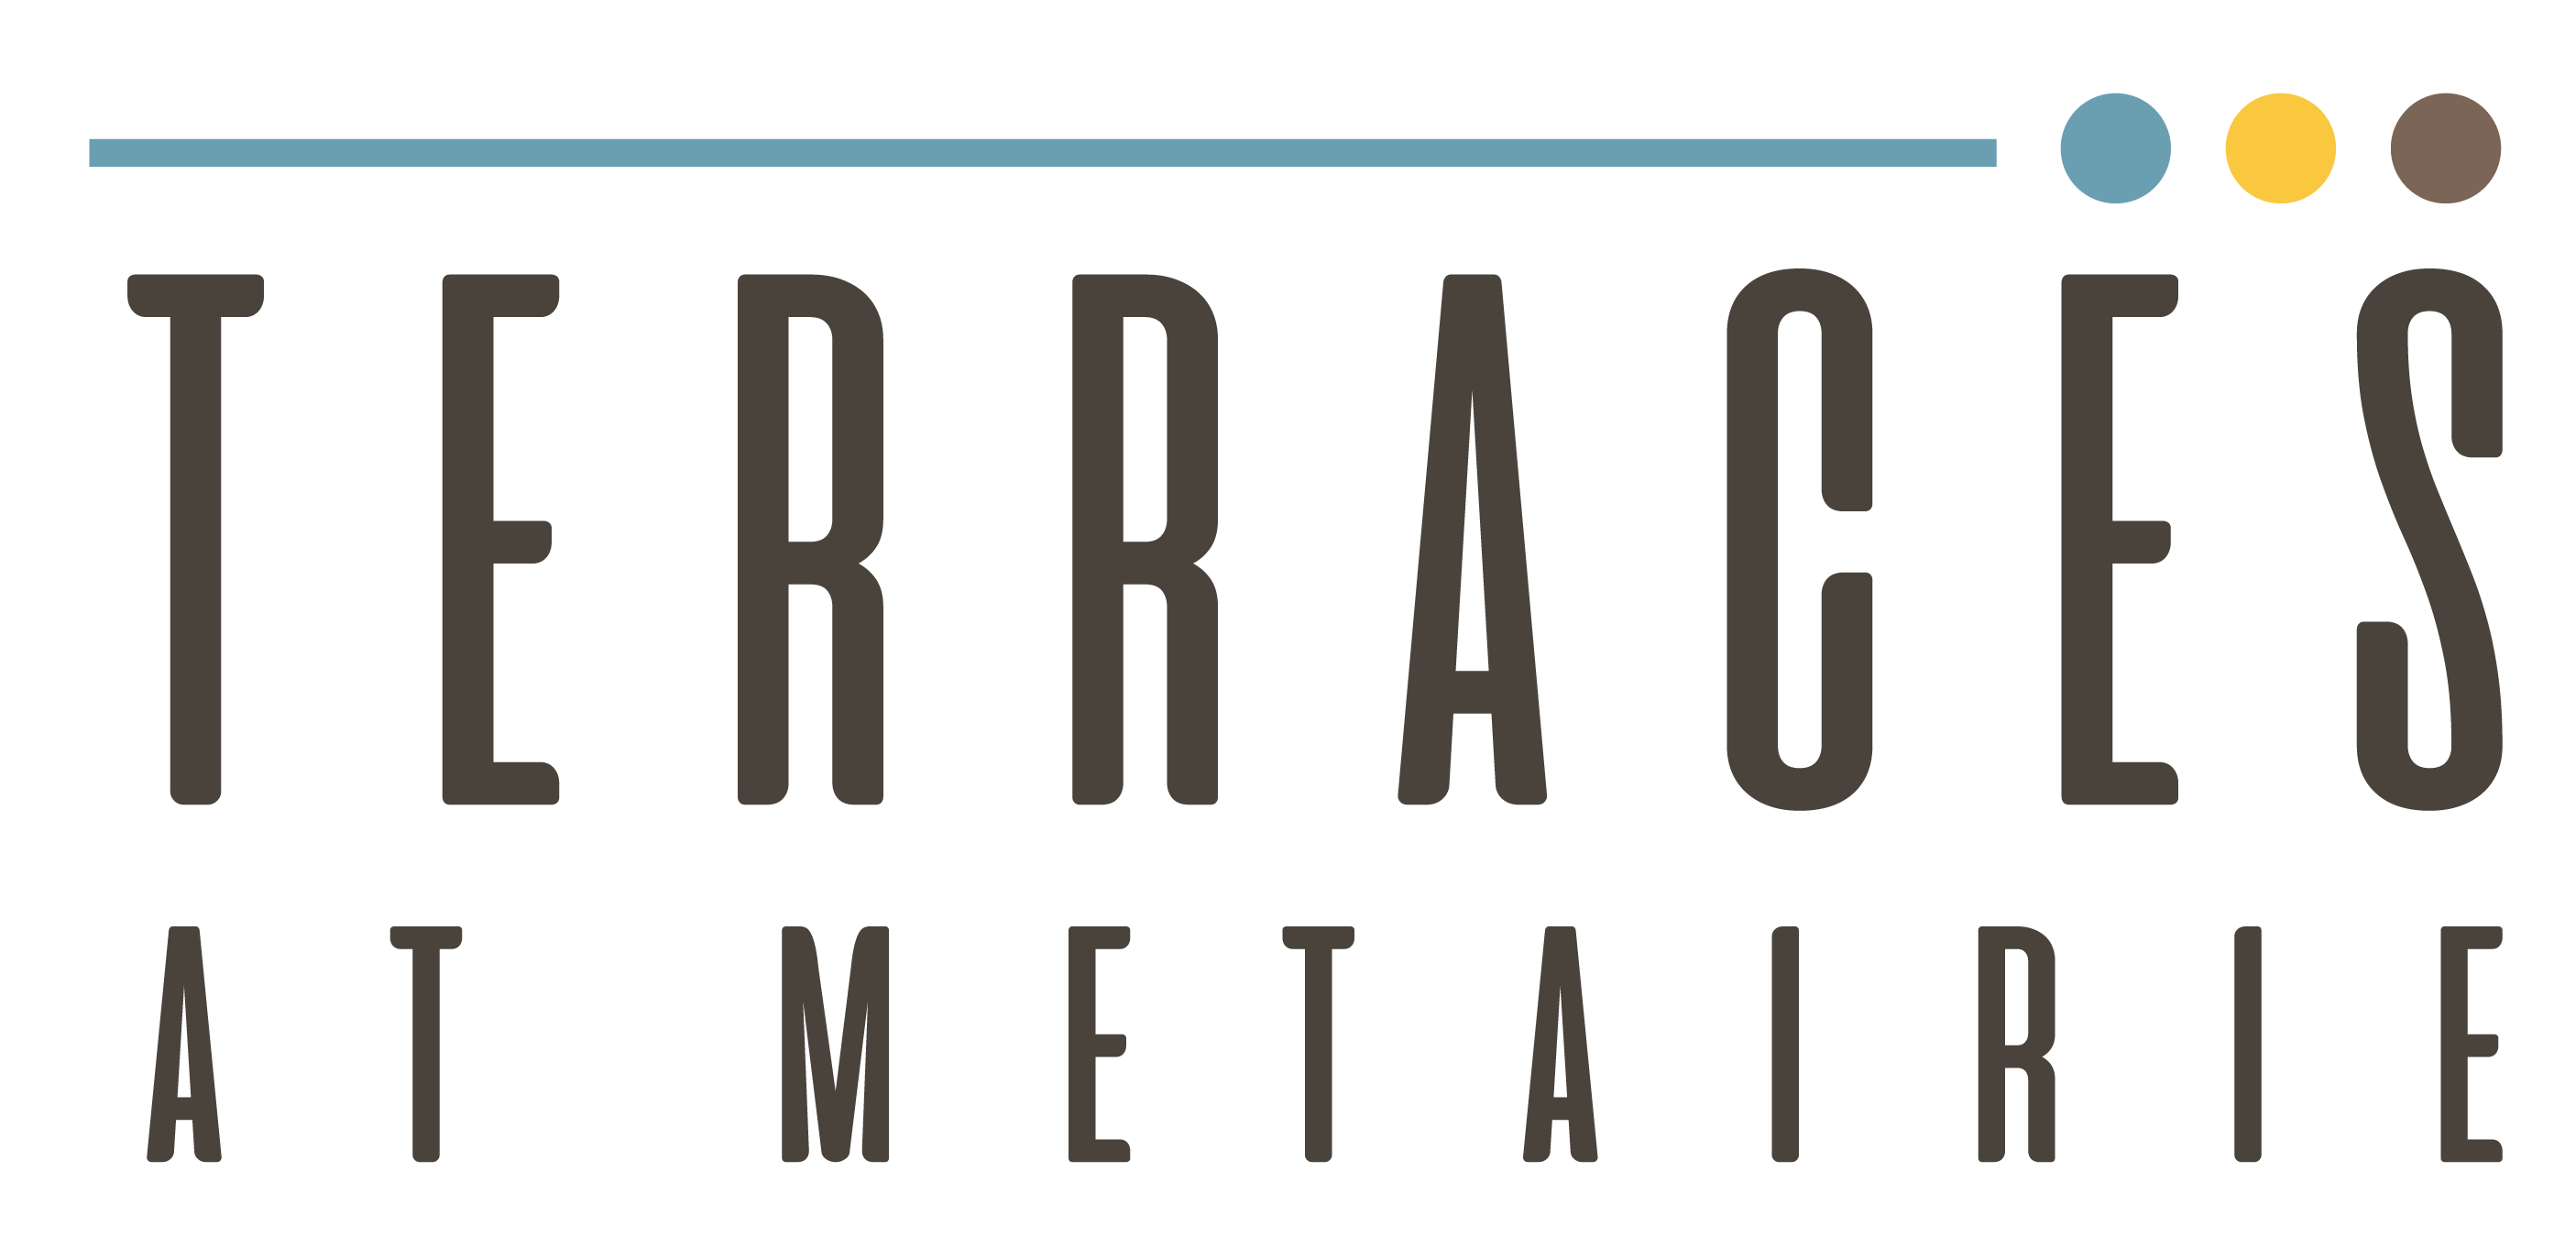 The Terraces at Metairie Logo